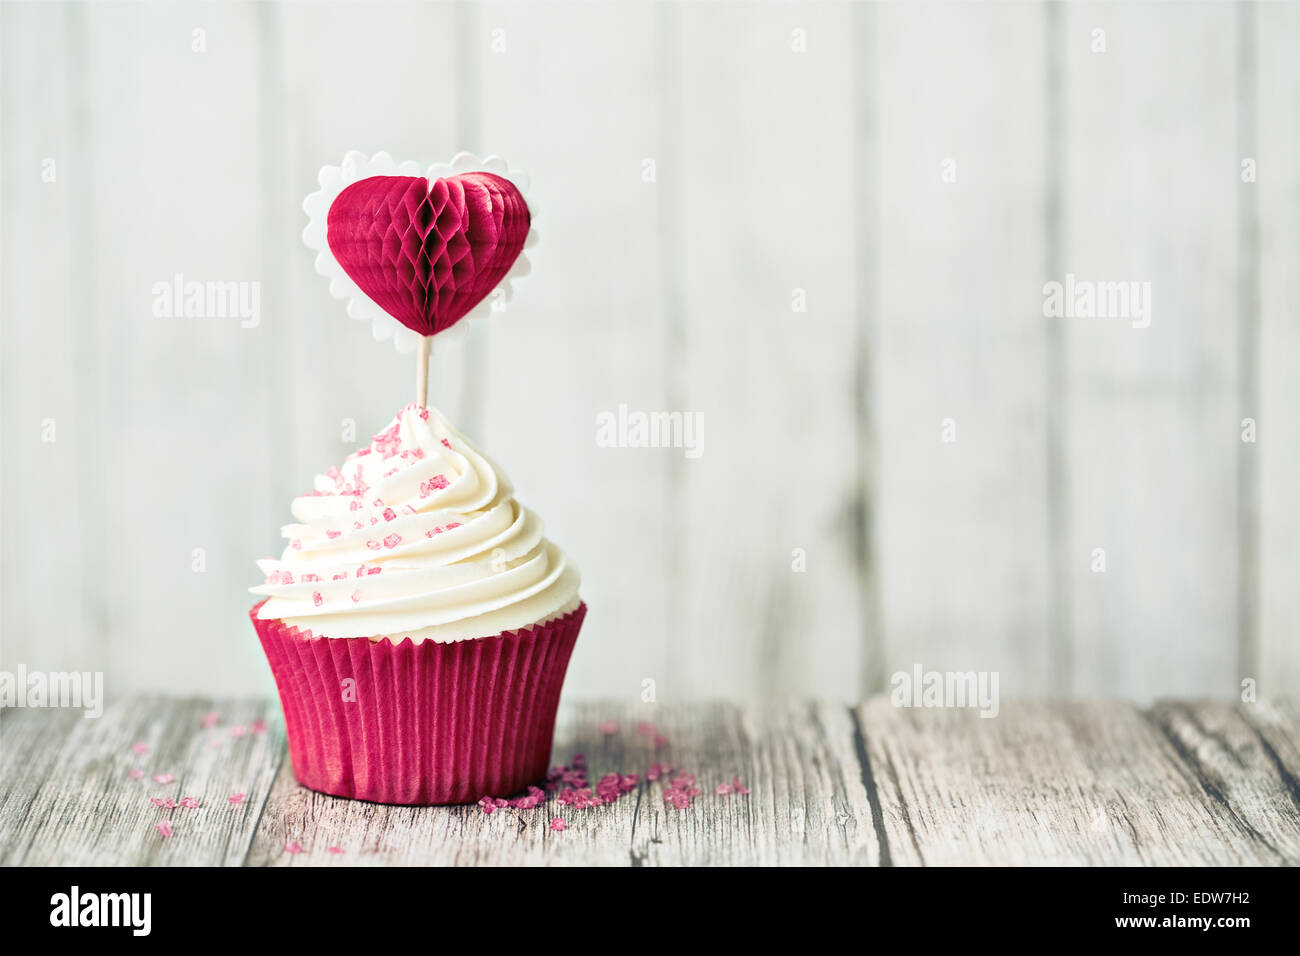 Cupcake decorated with a heart shaped cake pick - Stock Image